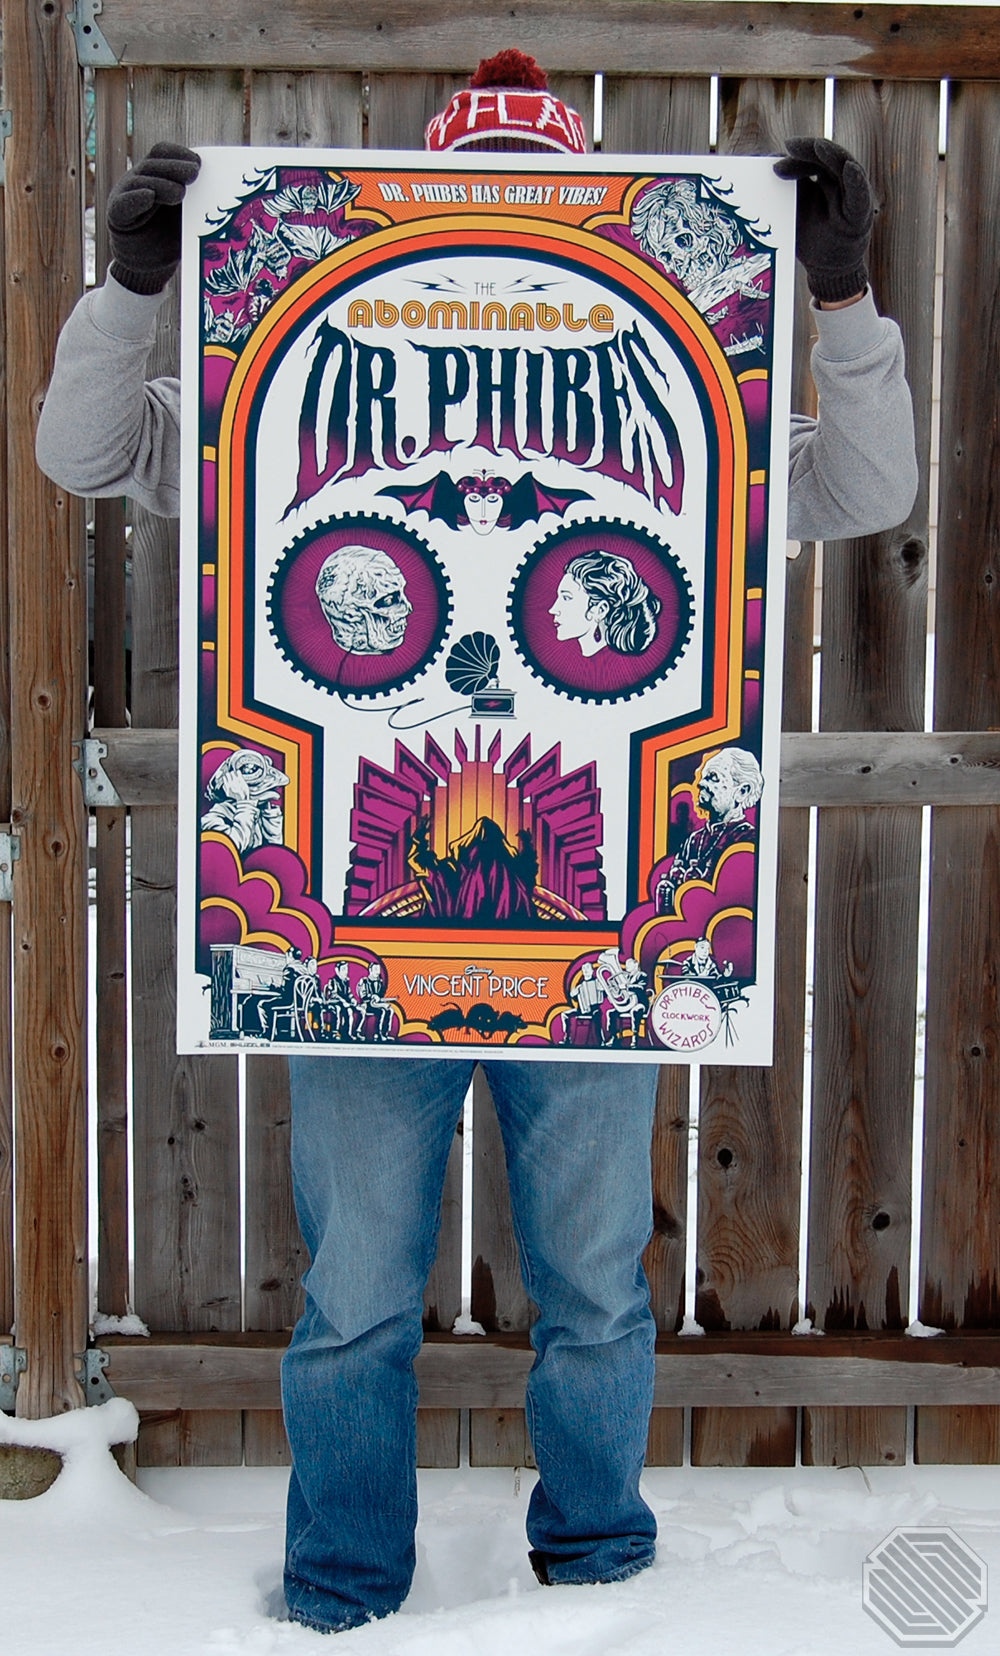 the Abominable Dr. Phibes - Skuzzles - Ghoulish Gary Pulin - Vincent Price - Limited Edition Screen Print